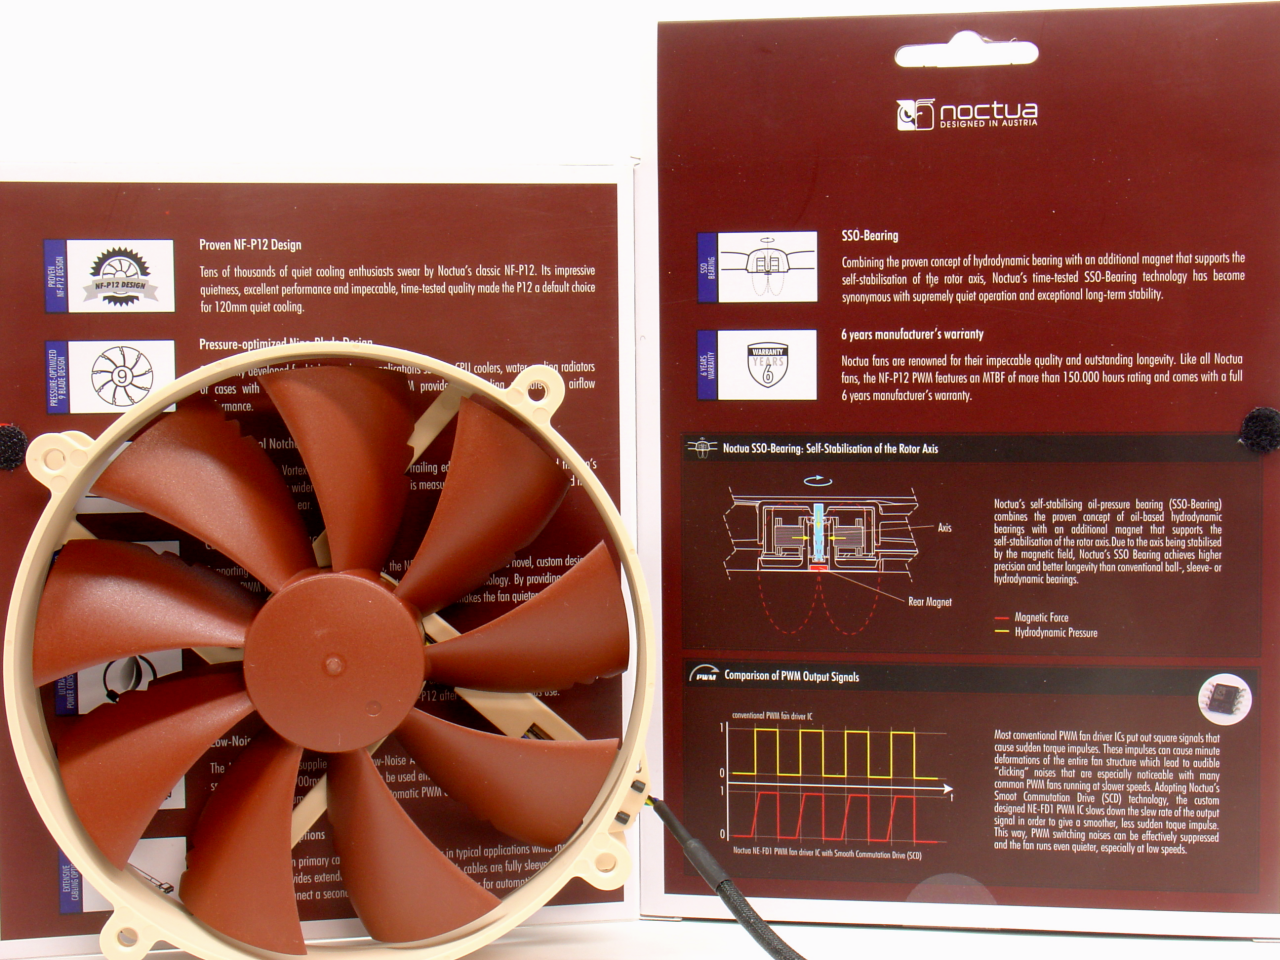 Noctua NF-P14 PWM and P12 box